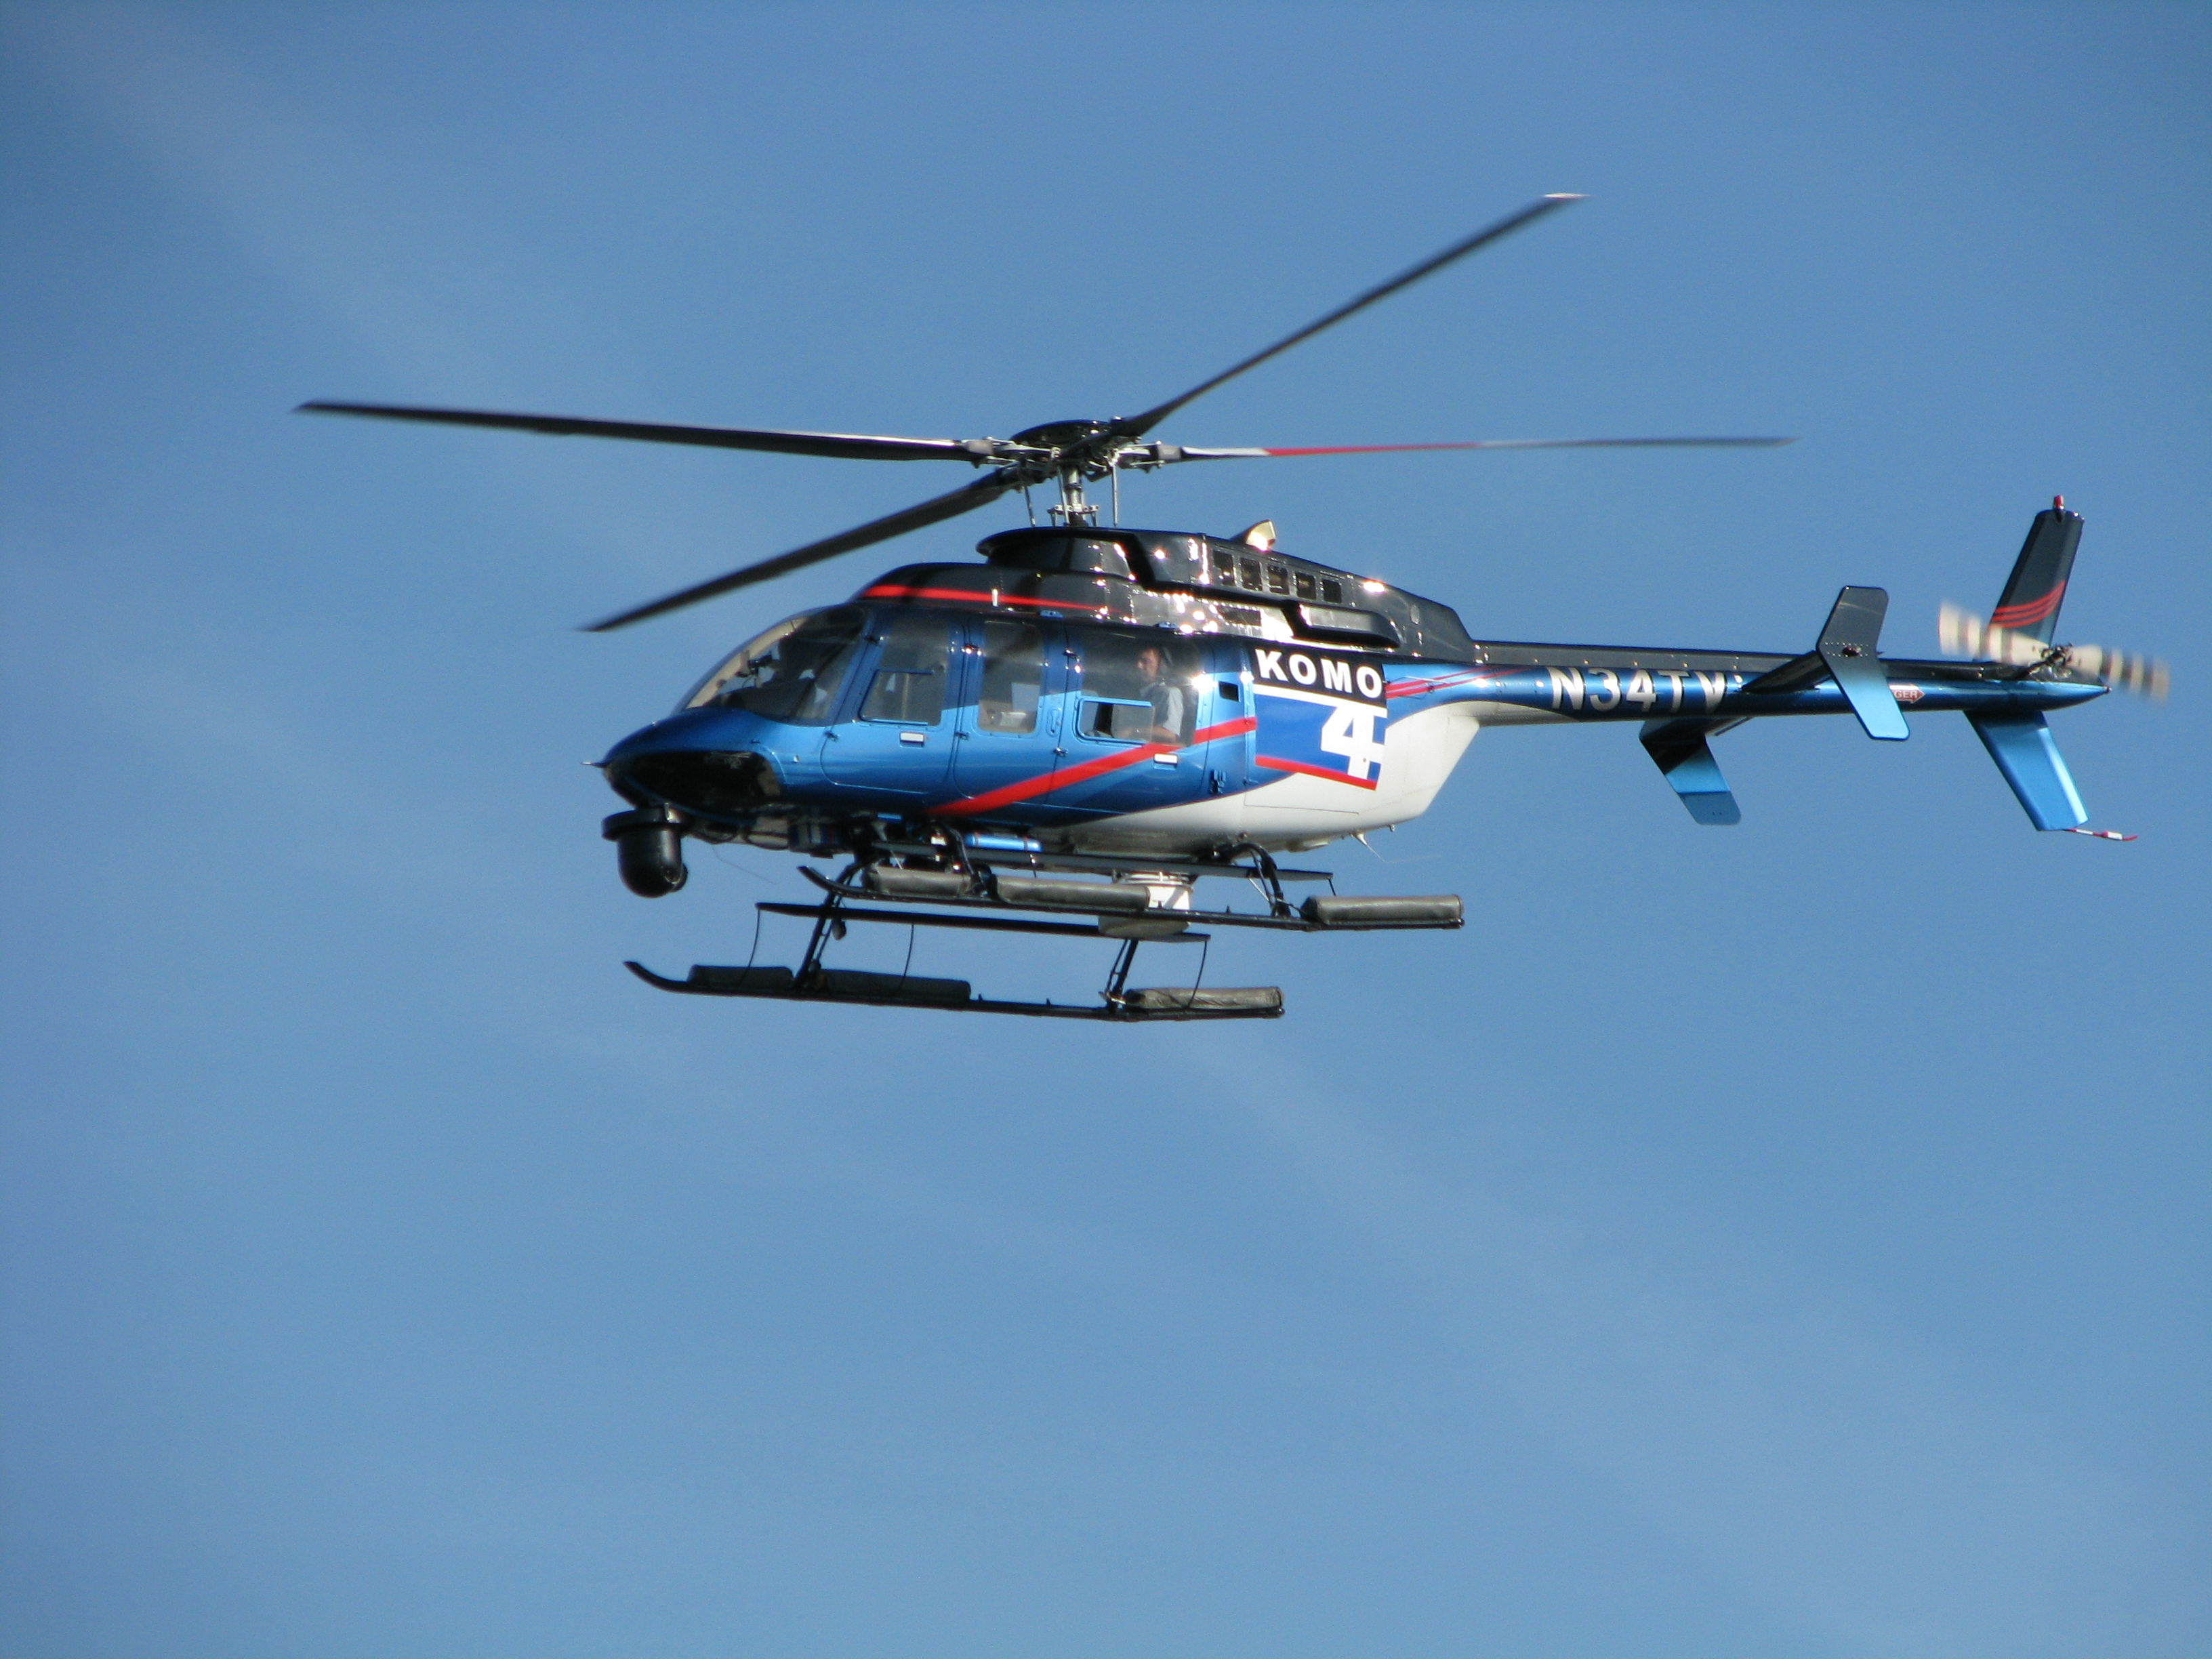 komo 4 helicopter crash with Helicopter Crashes In Downtown Seattle on 24938871 further 4 Injured As Helicopter Crash Lands On Los Angeles Street further Index together with Witnesses Report Military Helicopter Crashes On Golf Course In Maryland in addition Helicopter crashes in downtown seattle.